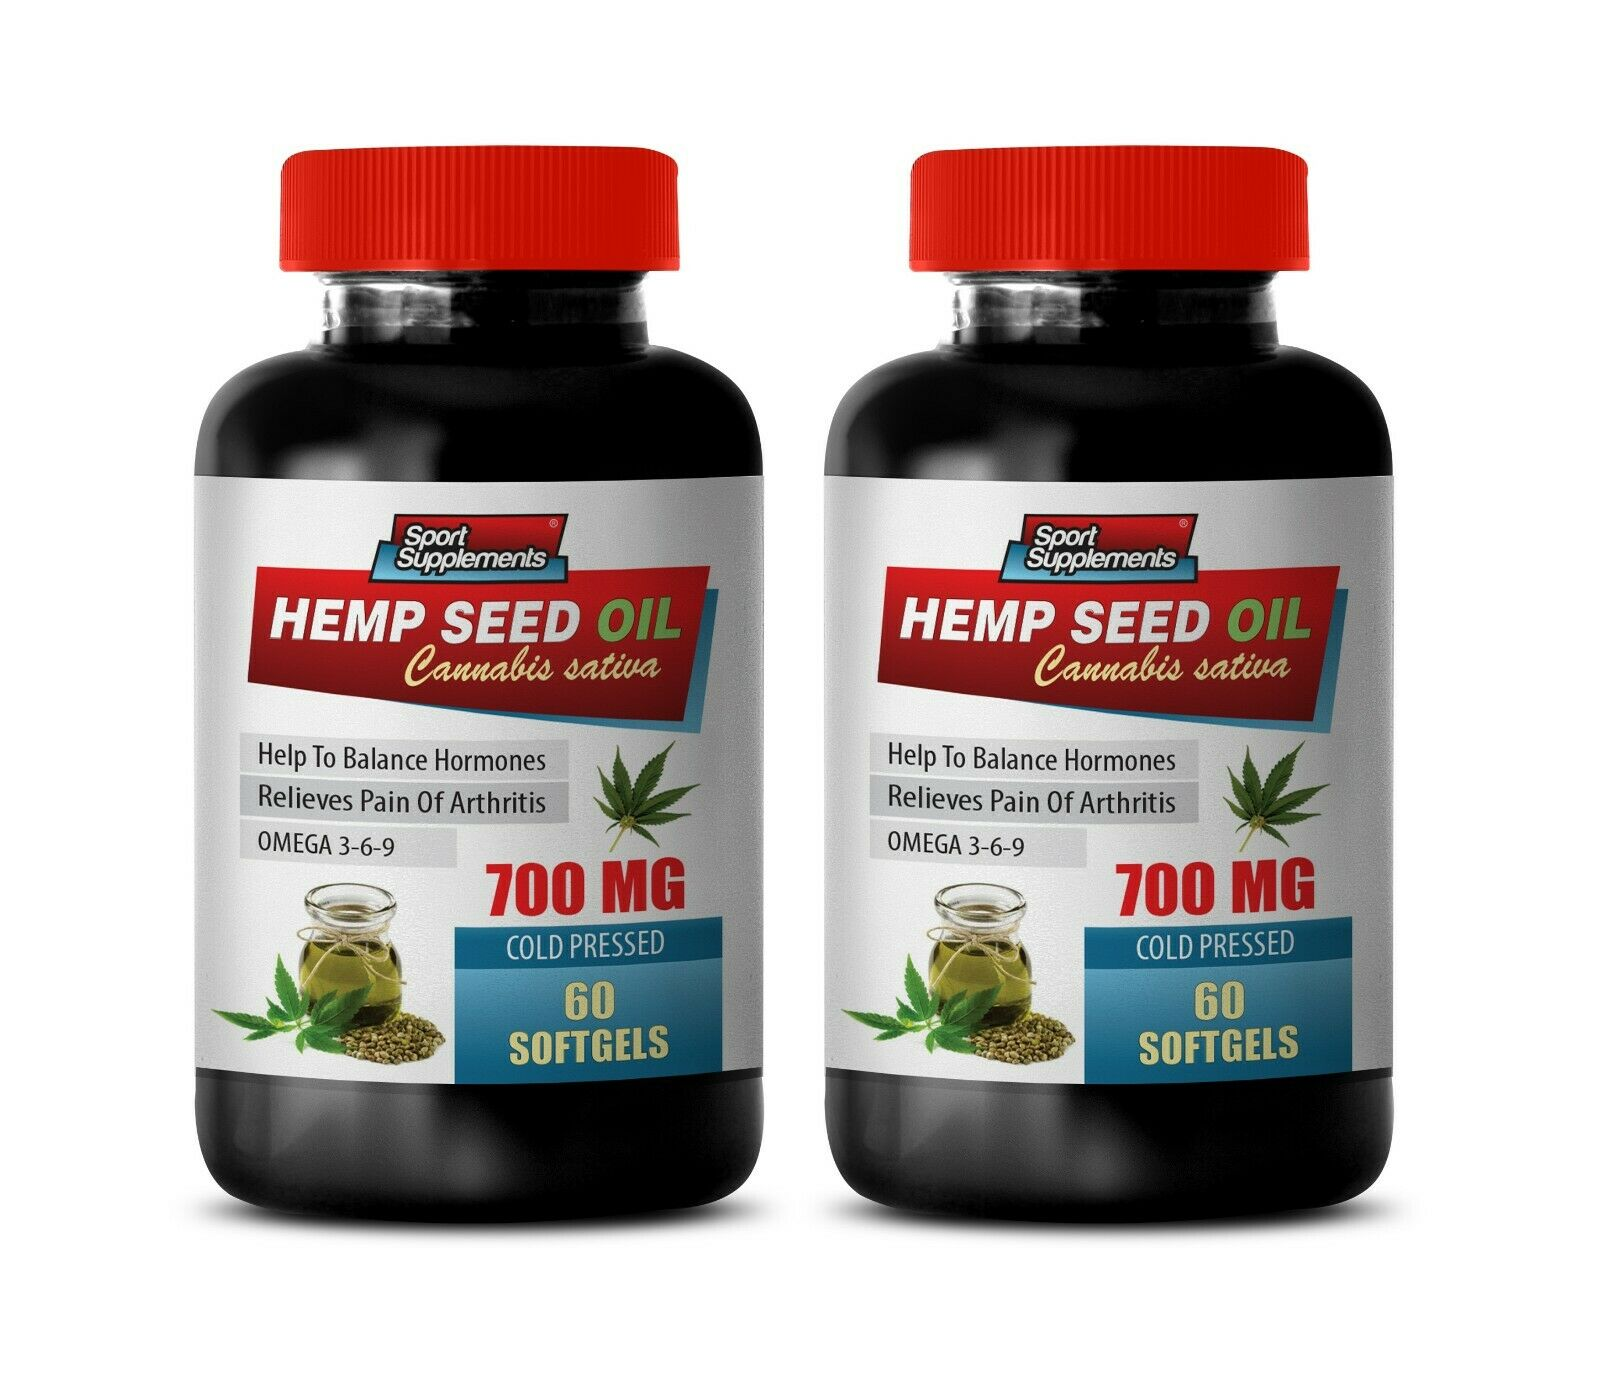 omega 3 6 9 - HEMP SEED OIL 700mg - women hormone balance - 2 Bottles